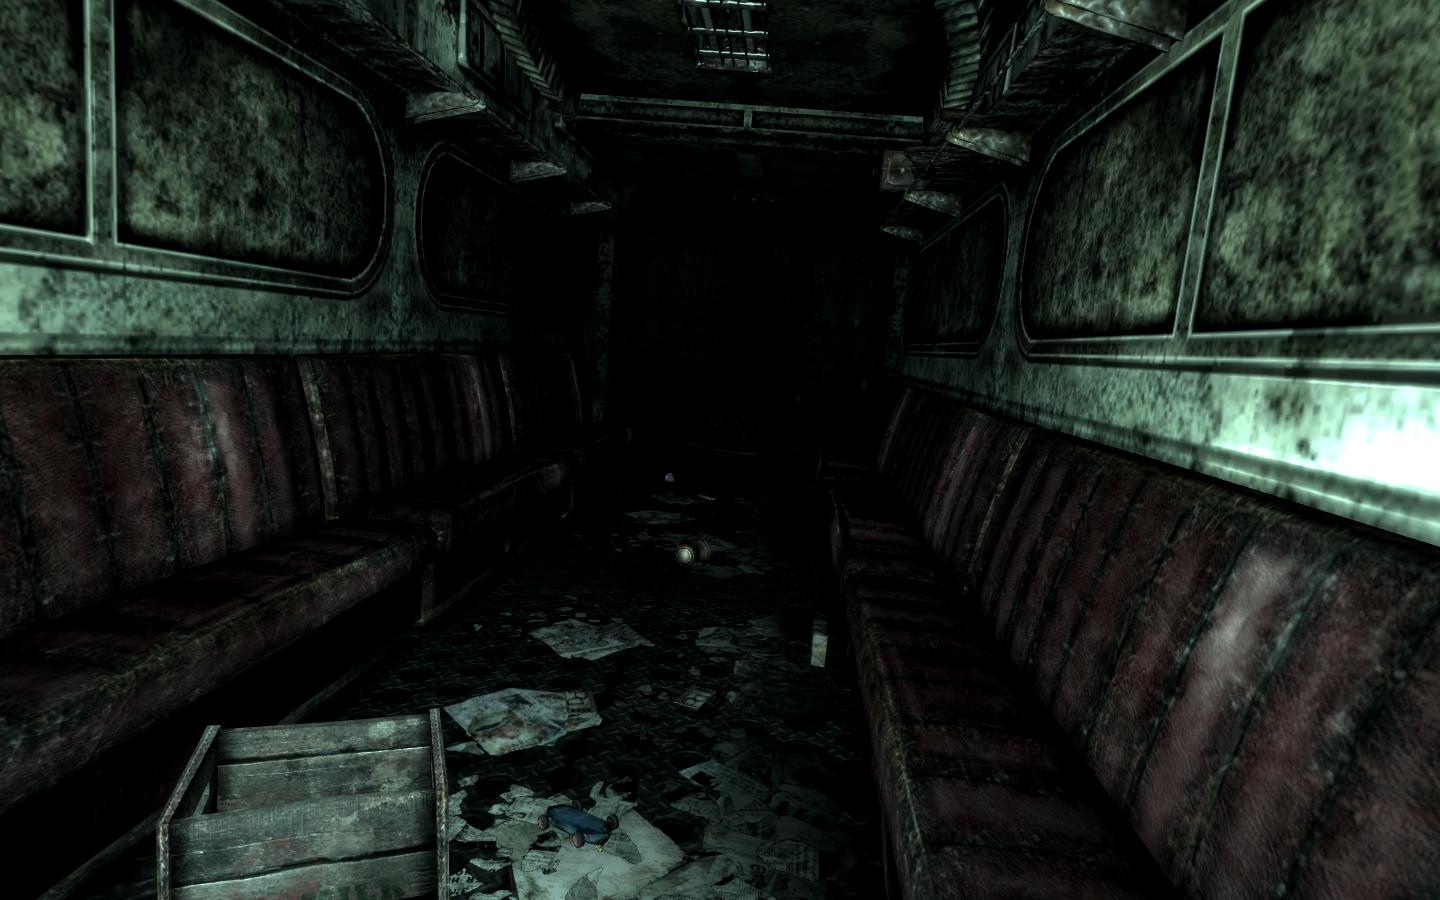 Metro carriage interiors ttw at fallout new vegas mods and community - Carrage metro ...